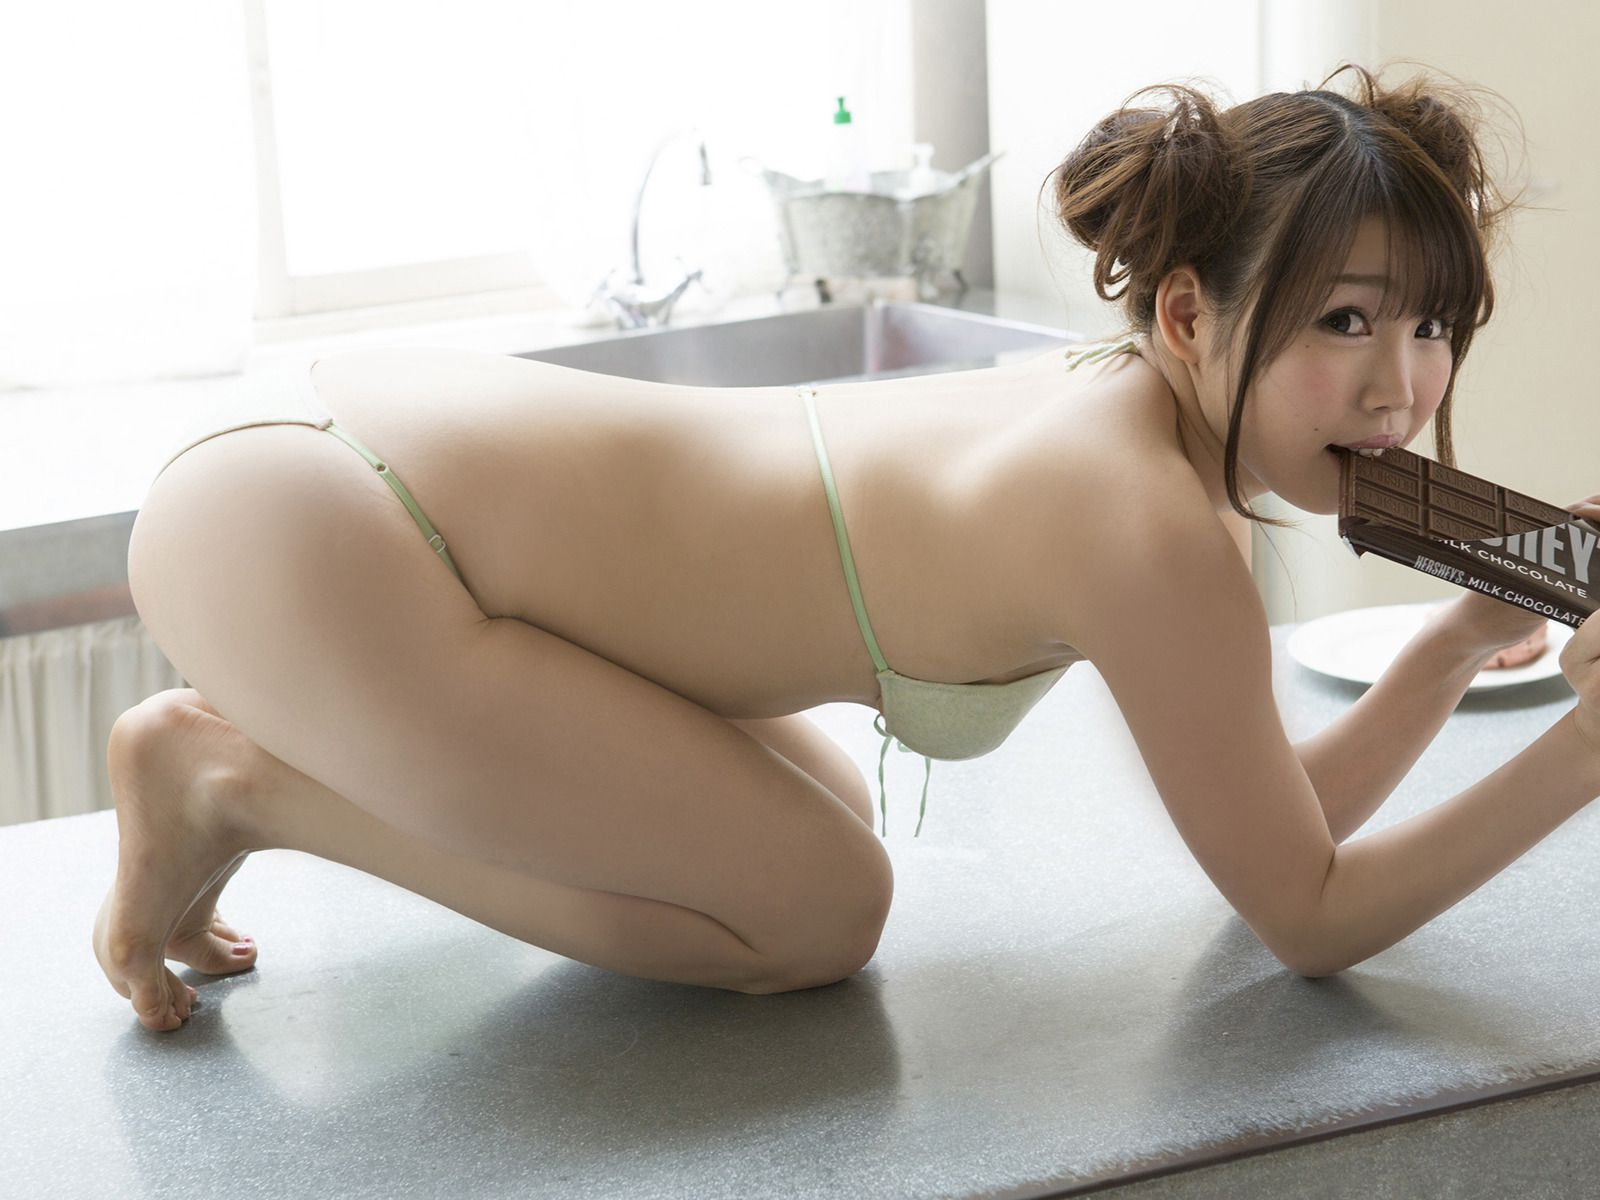 Mai Tsukamoto is naturally energized by the ample G breast028